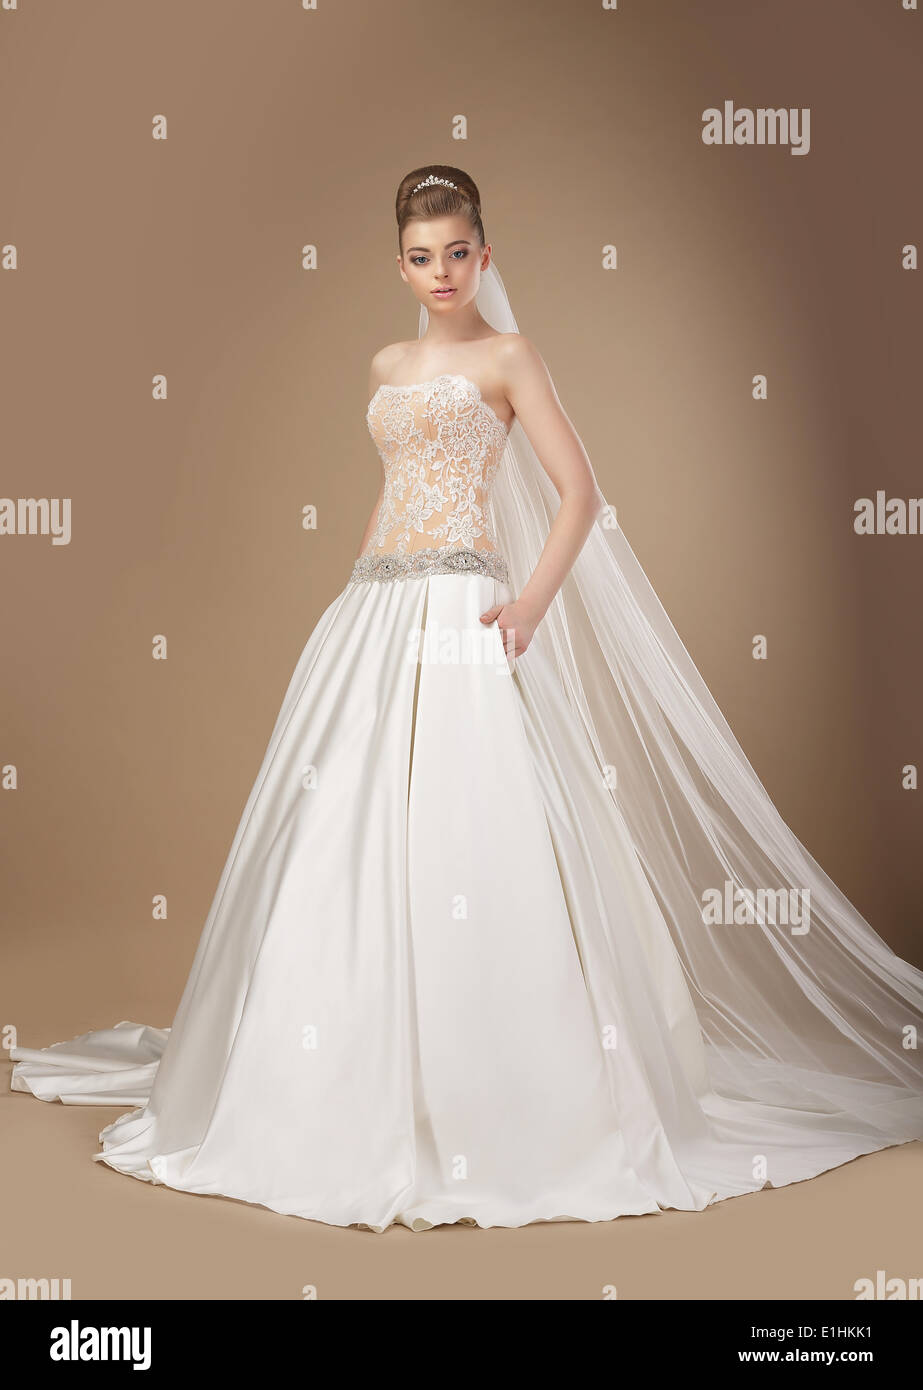 Sophisticated Slender Woman in Long Elegant Dress posing Stock Photo